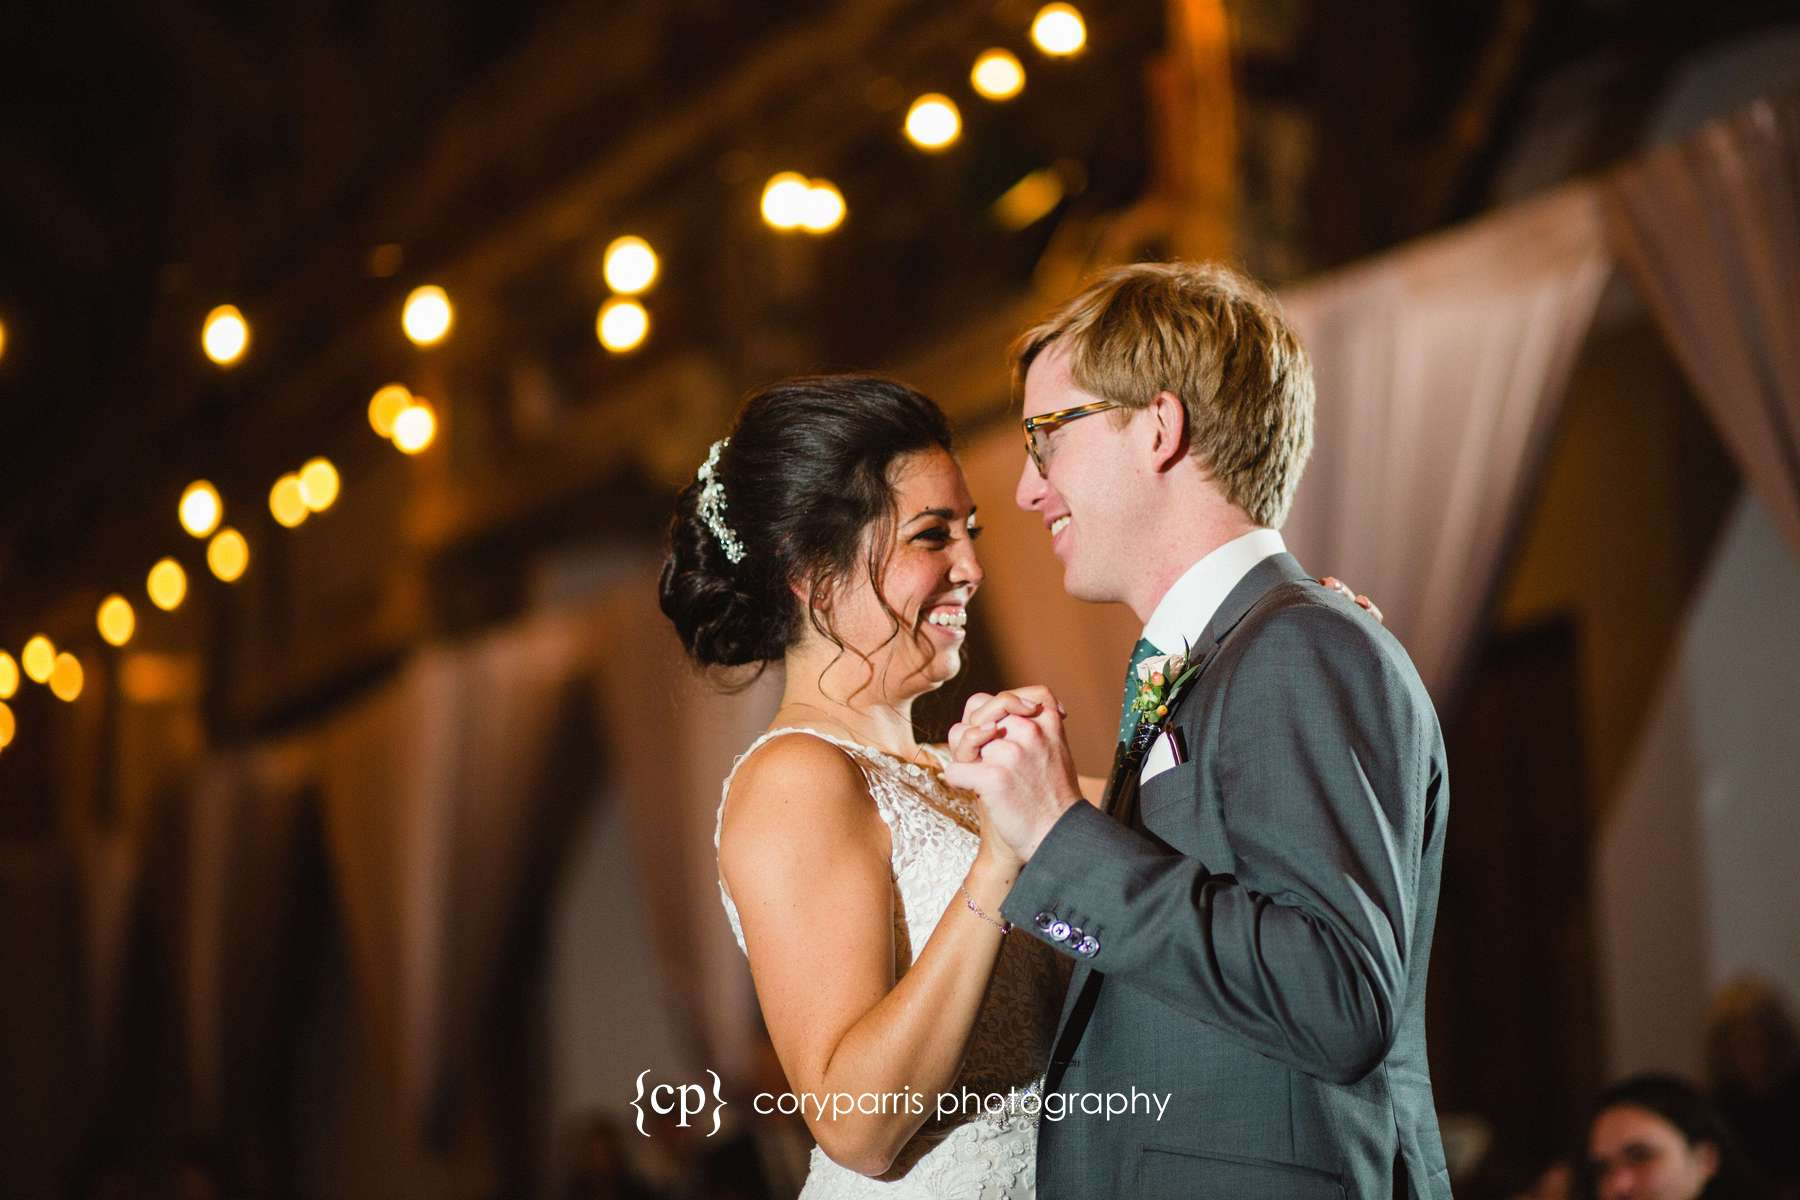 Amy & Kevin laughing during the first dance